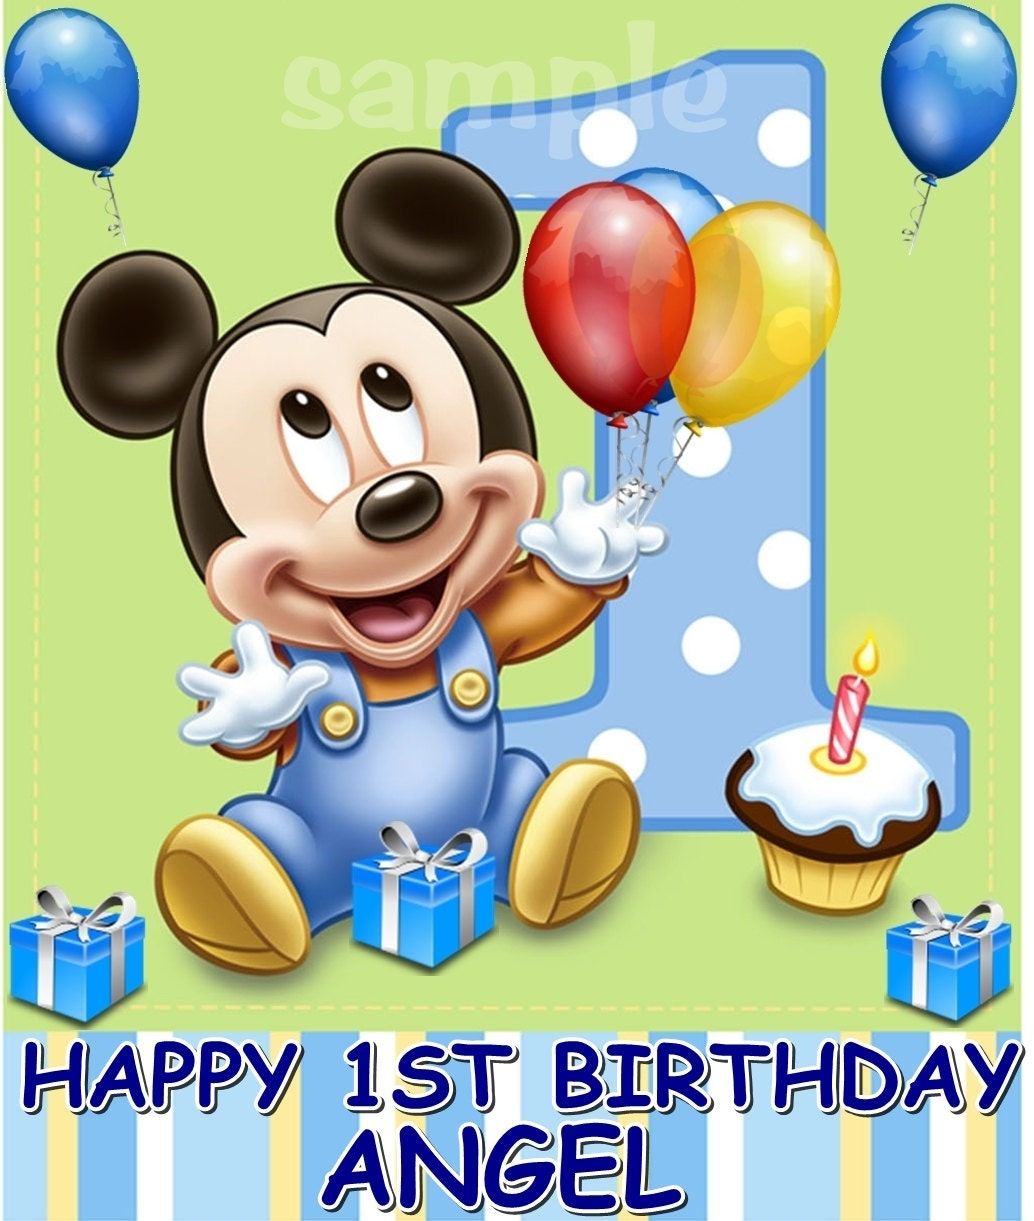 Baby mickey mouse edible cake topper decoration